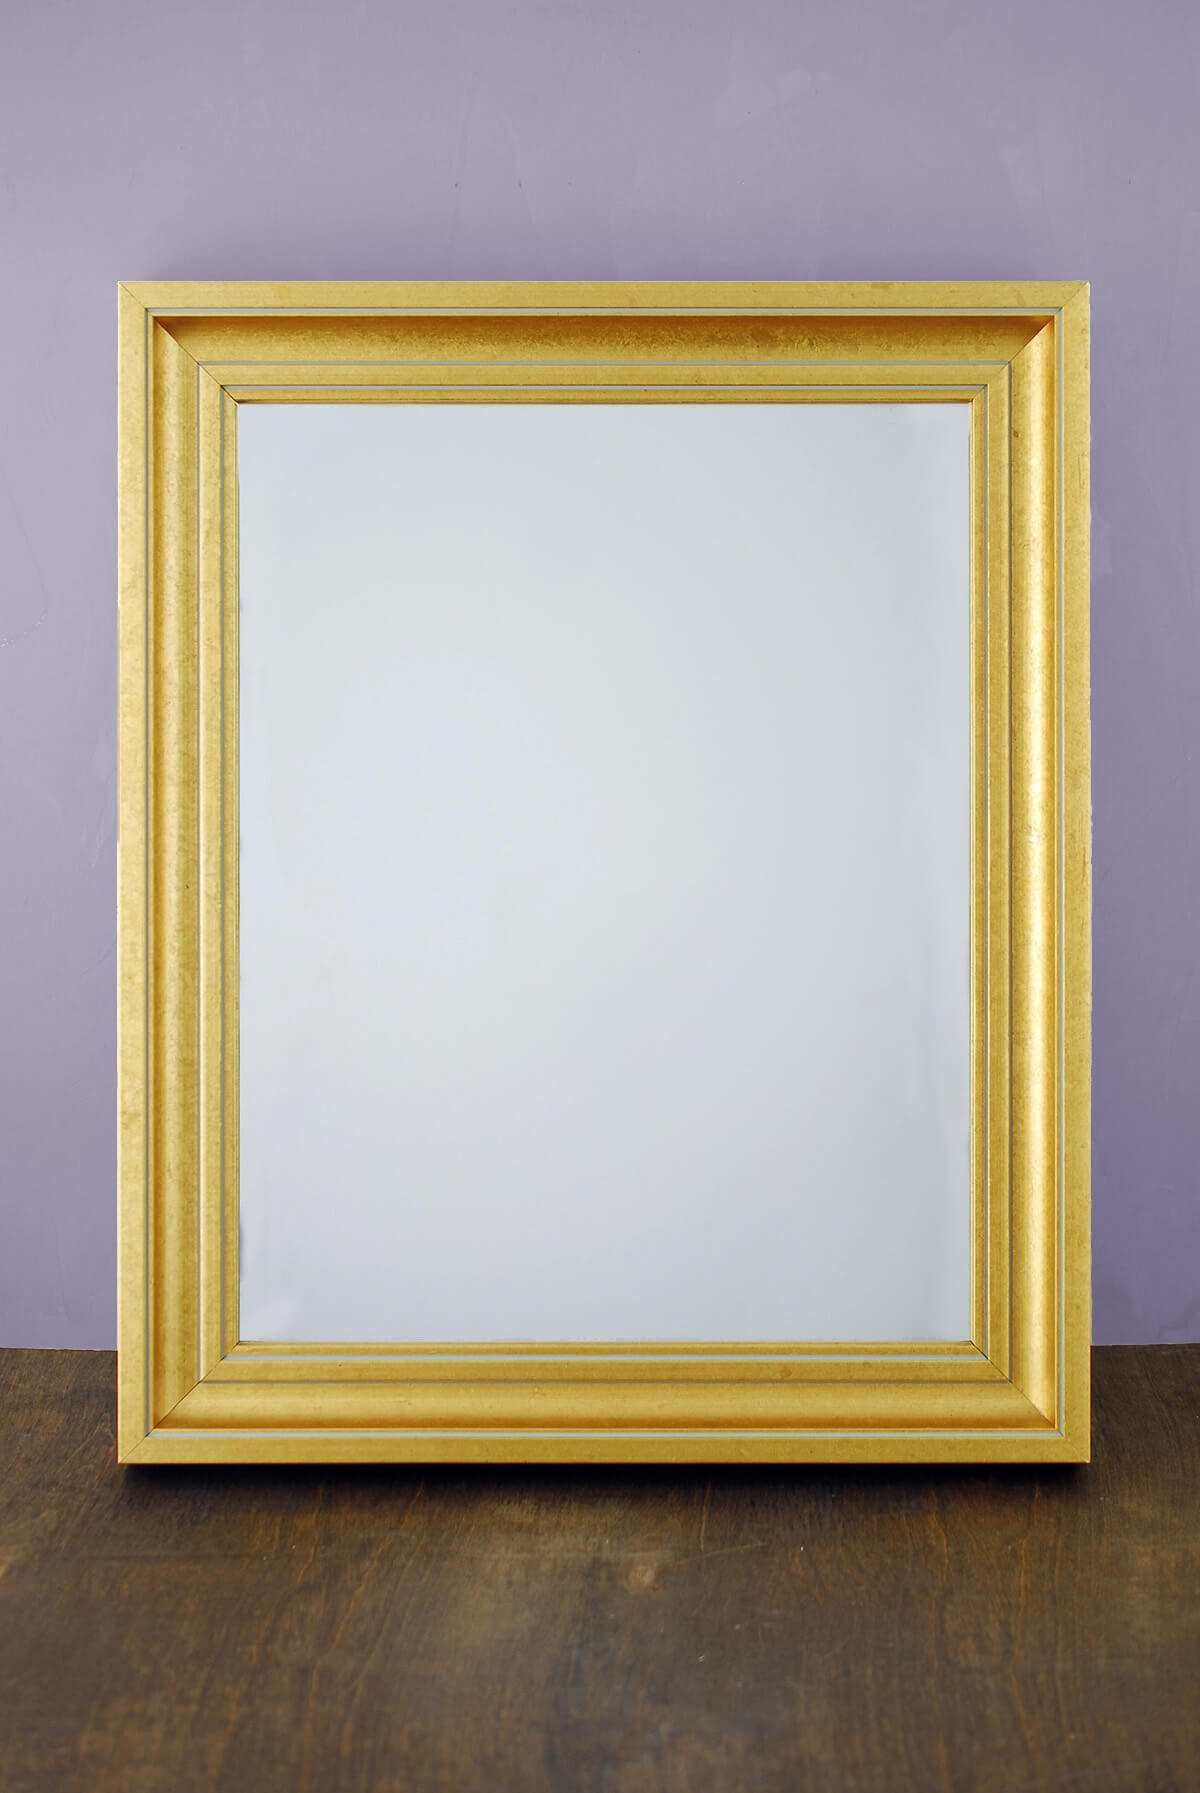 Framed mirror gold for 11x14 table top frame